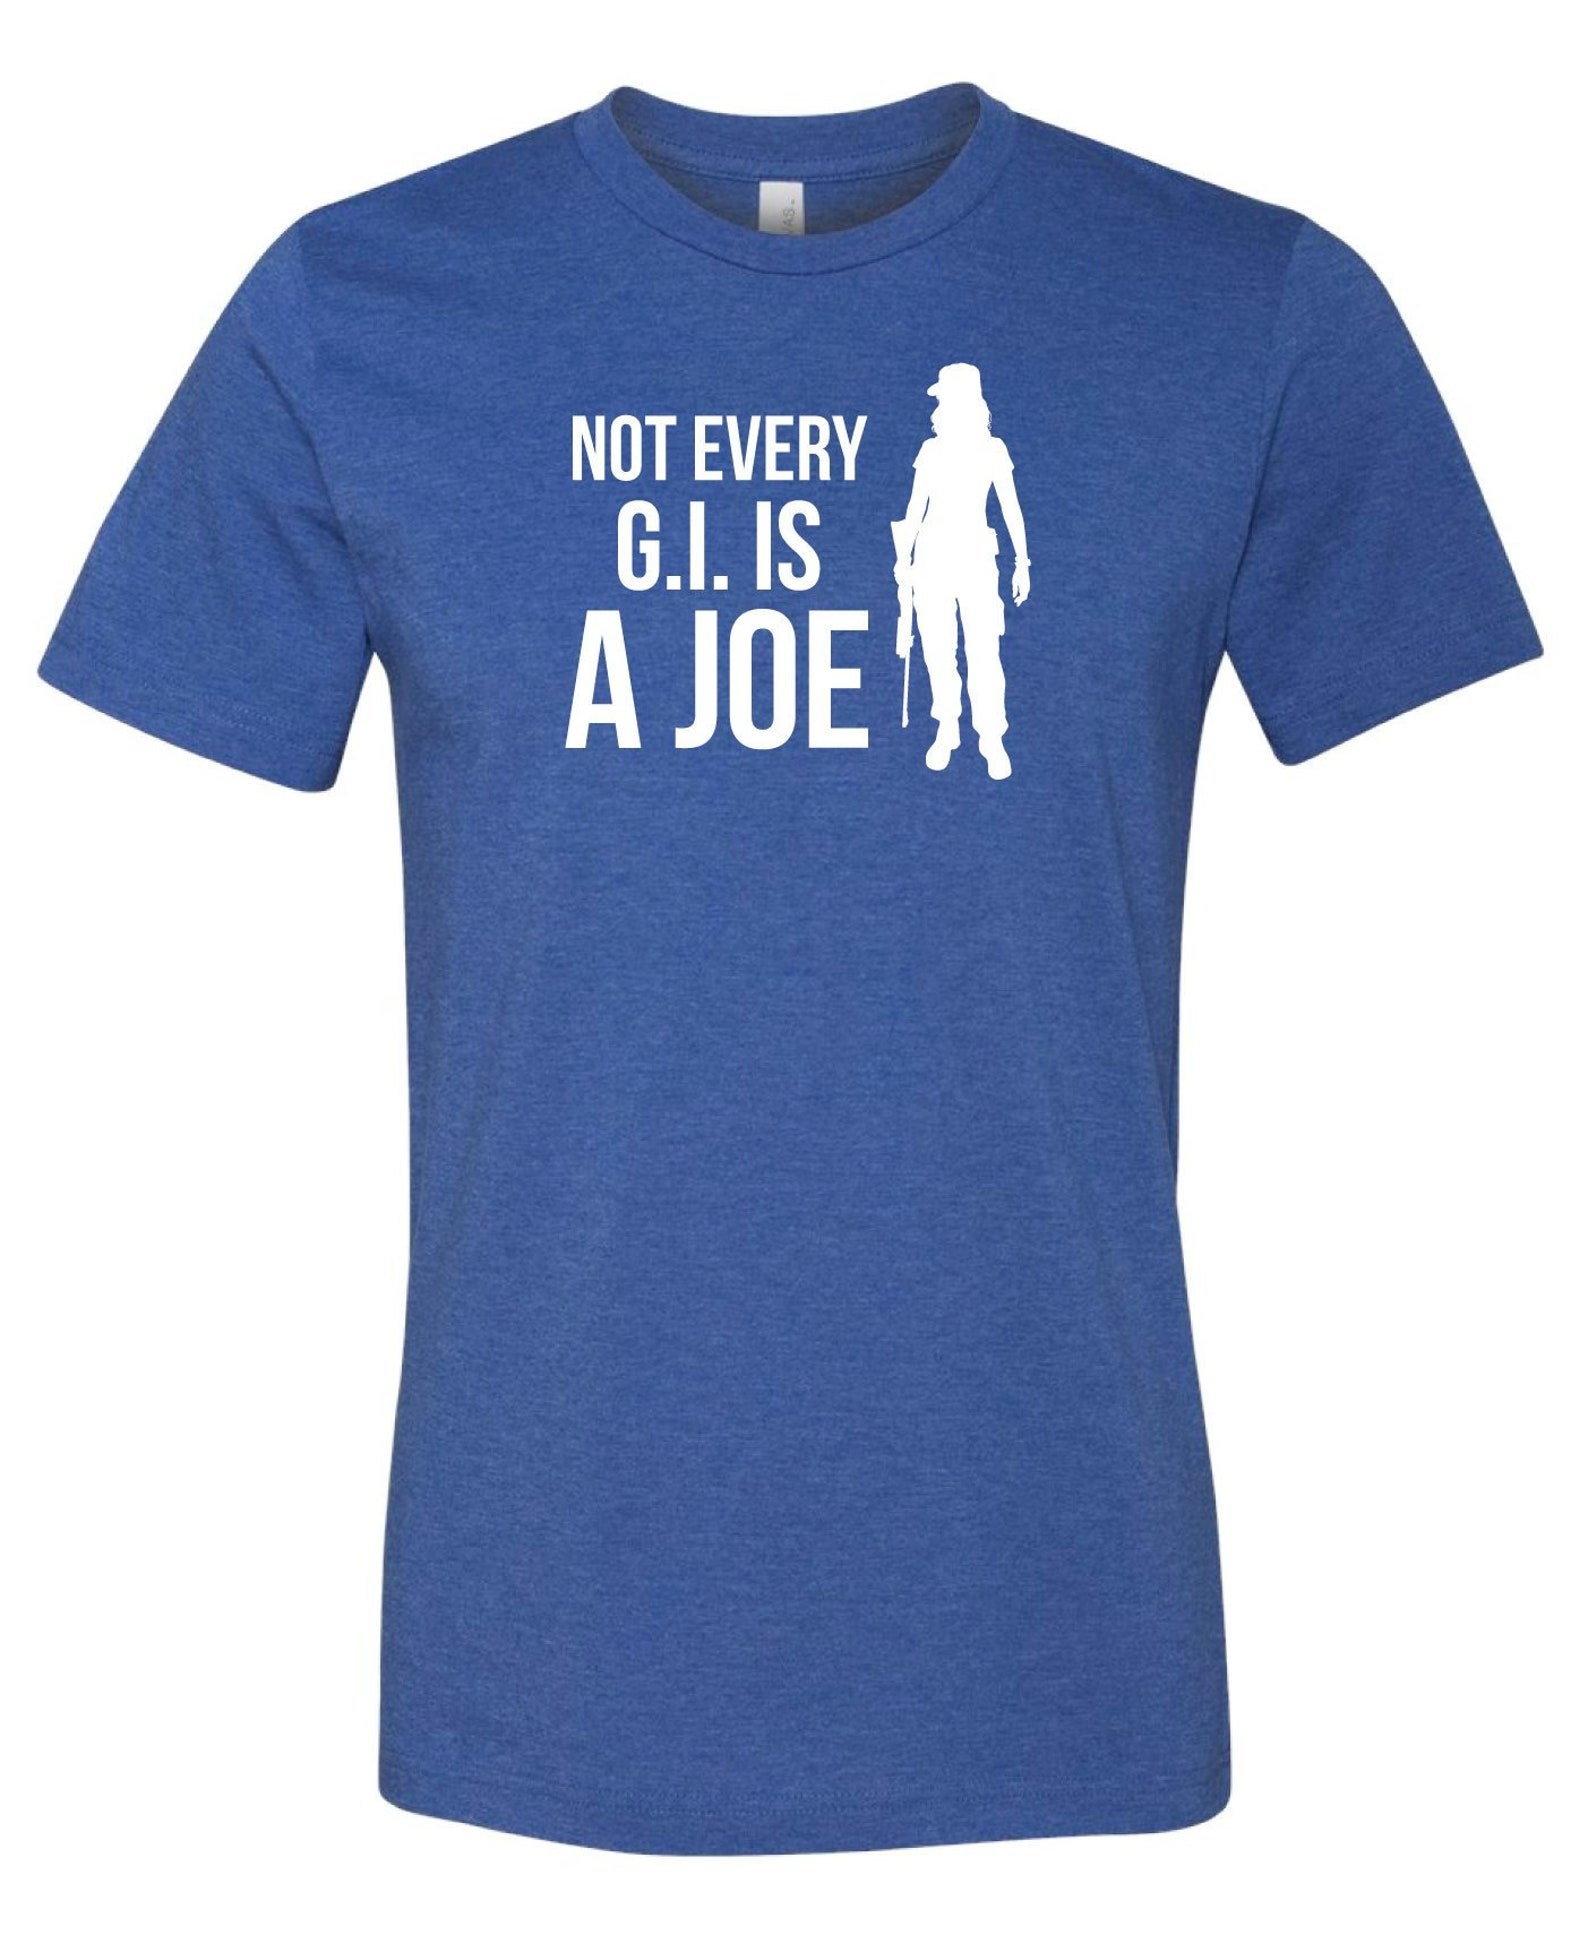 "Blue graphic tee that says ""not every G.I. is a Joe."" in white lettering. With a silhouette of a female service member with a gun."